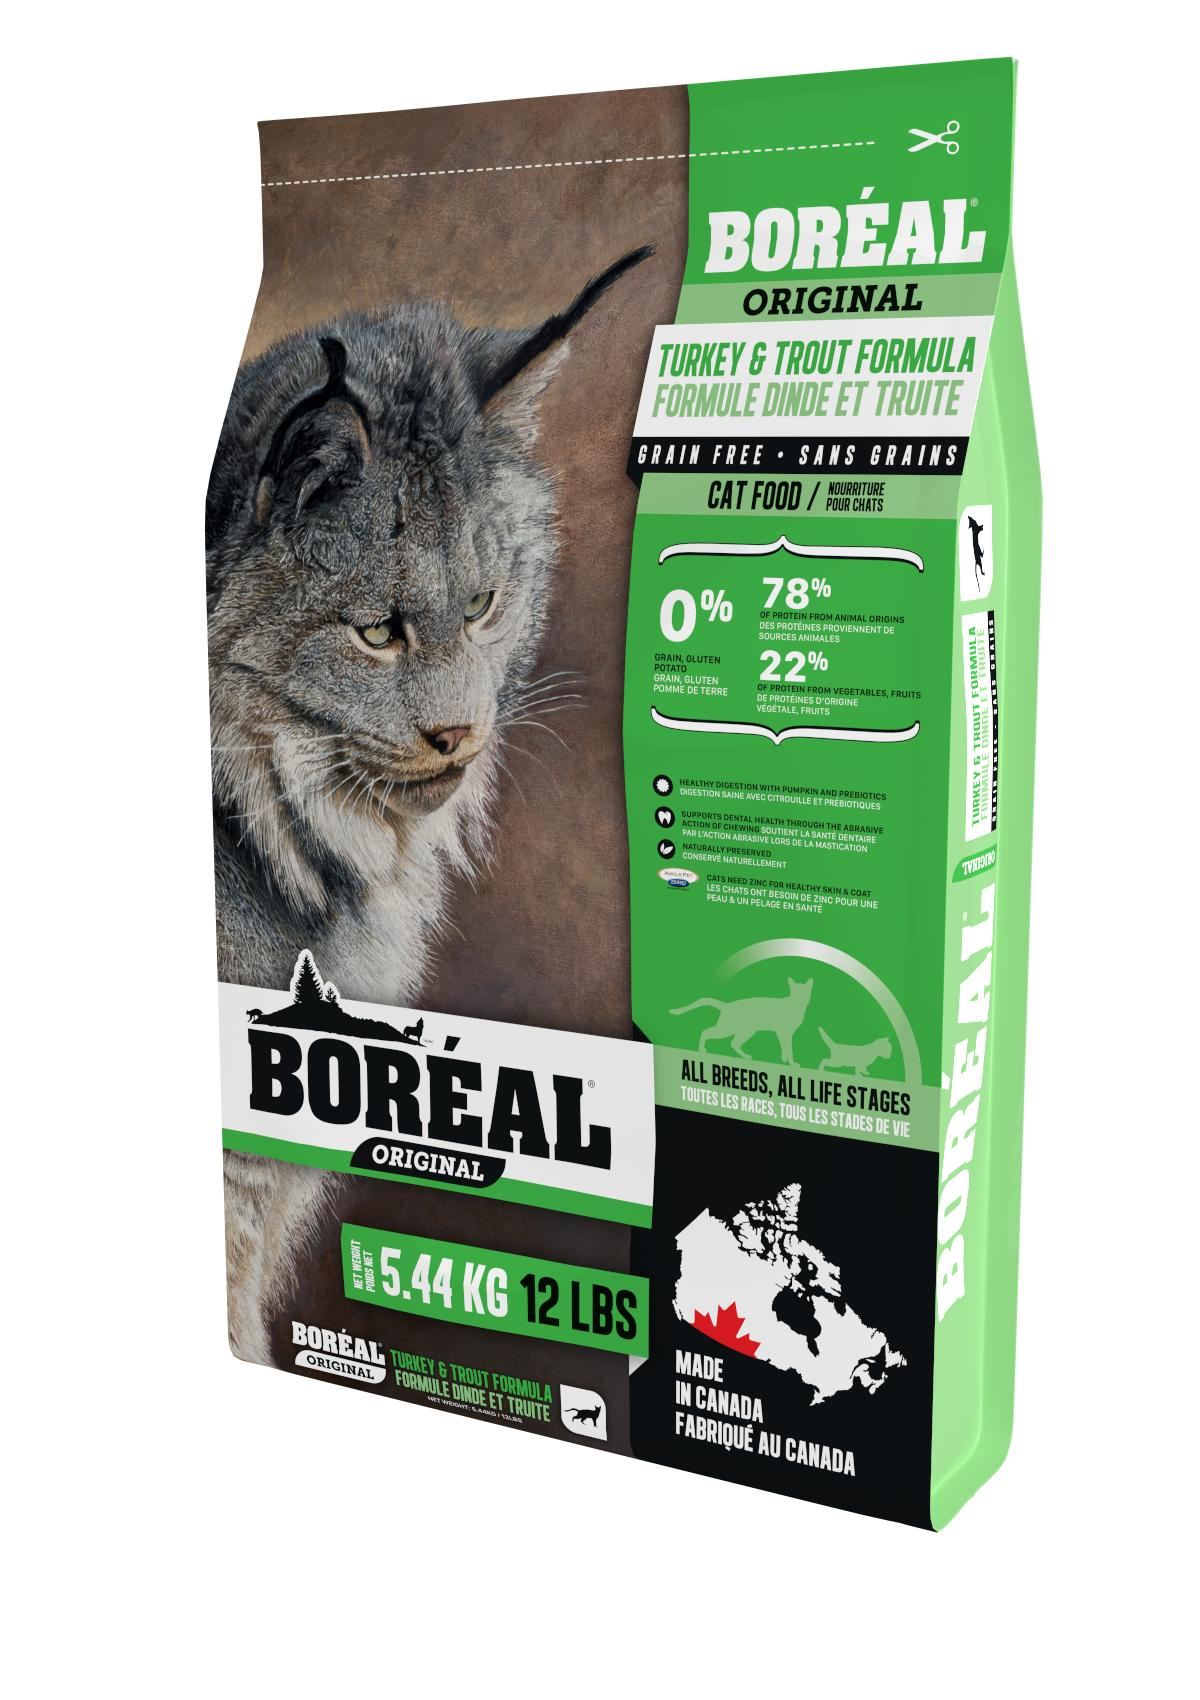 Boreal Original, All Breeds, Turkey and Trout Formula Dry Cat Food, 5.44kg